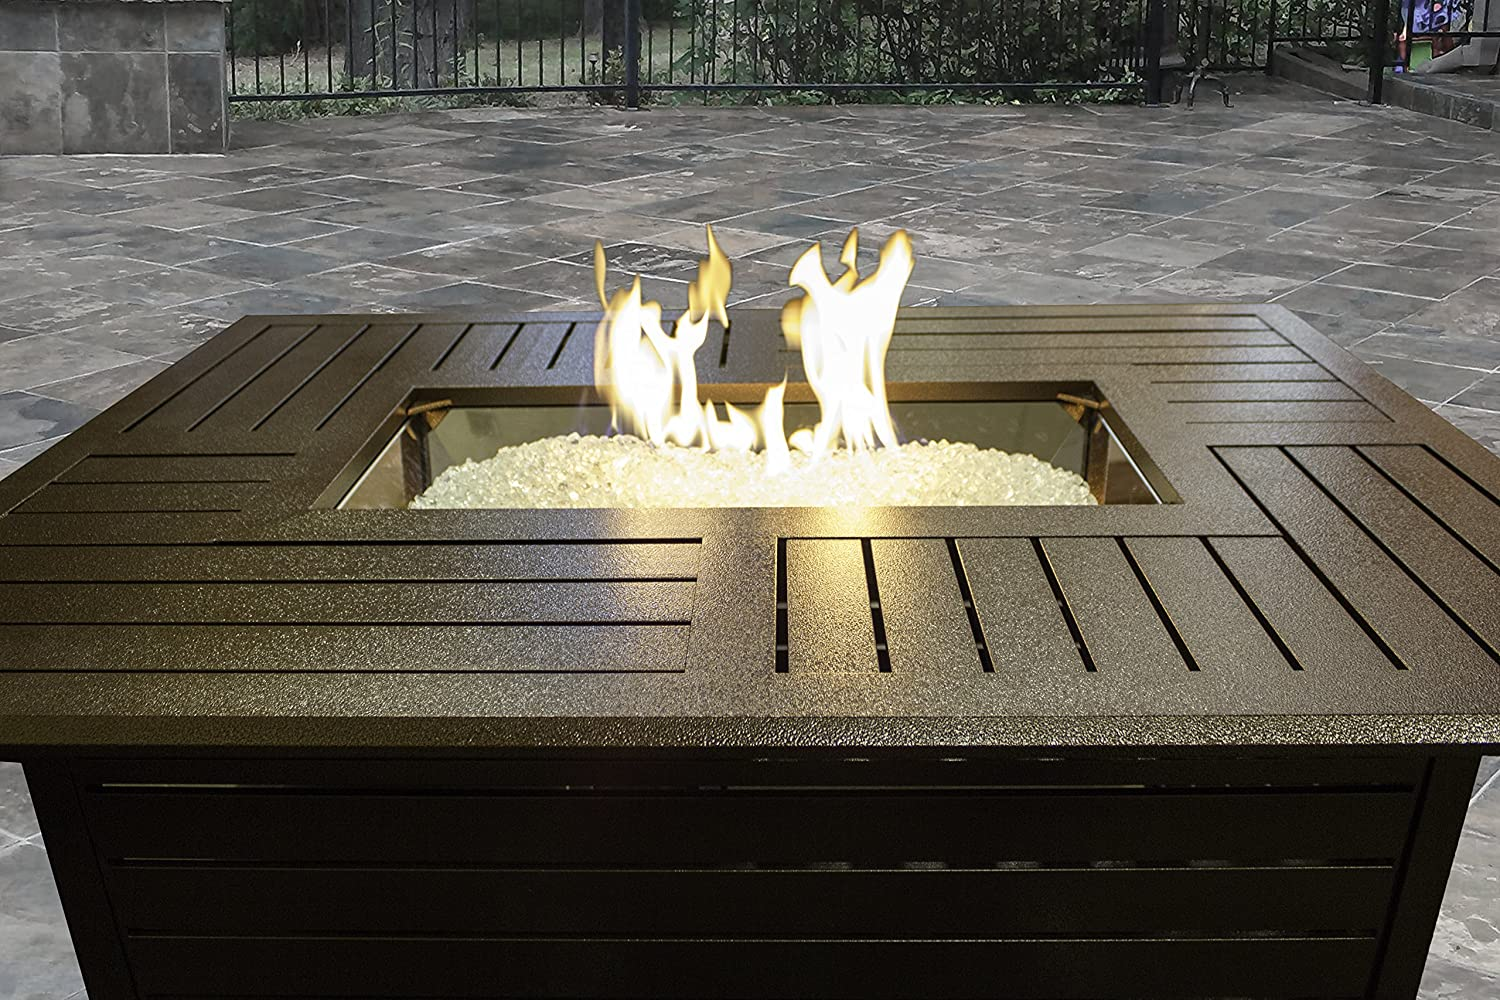 Exceptionnel Amazon.com : AZ Patio Heaters Fire Pit, Extruded Aluminum Rectangular :  Garden U0026 Outdoor